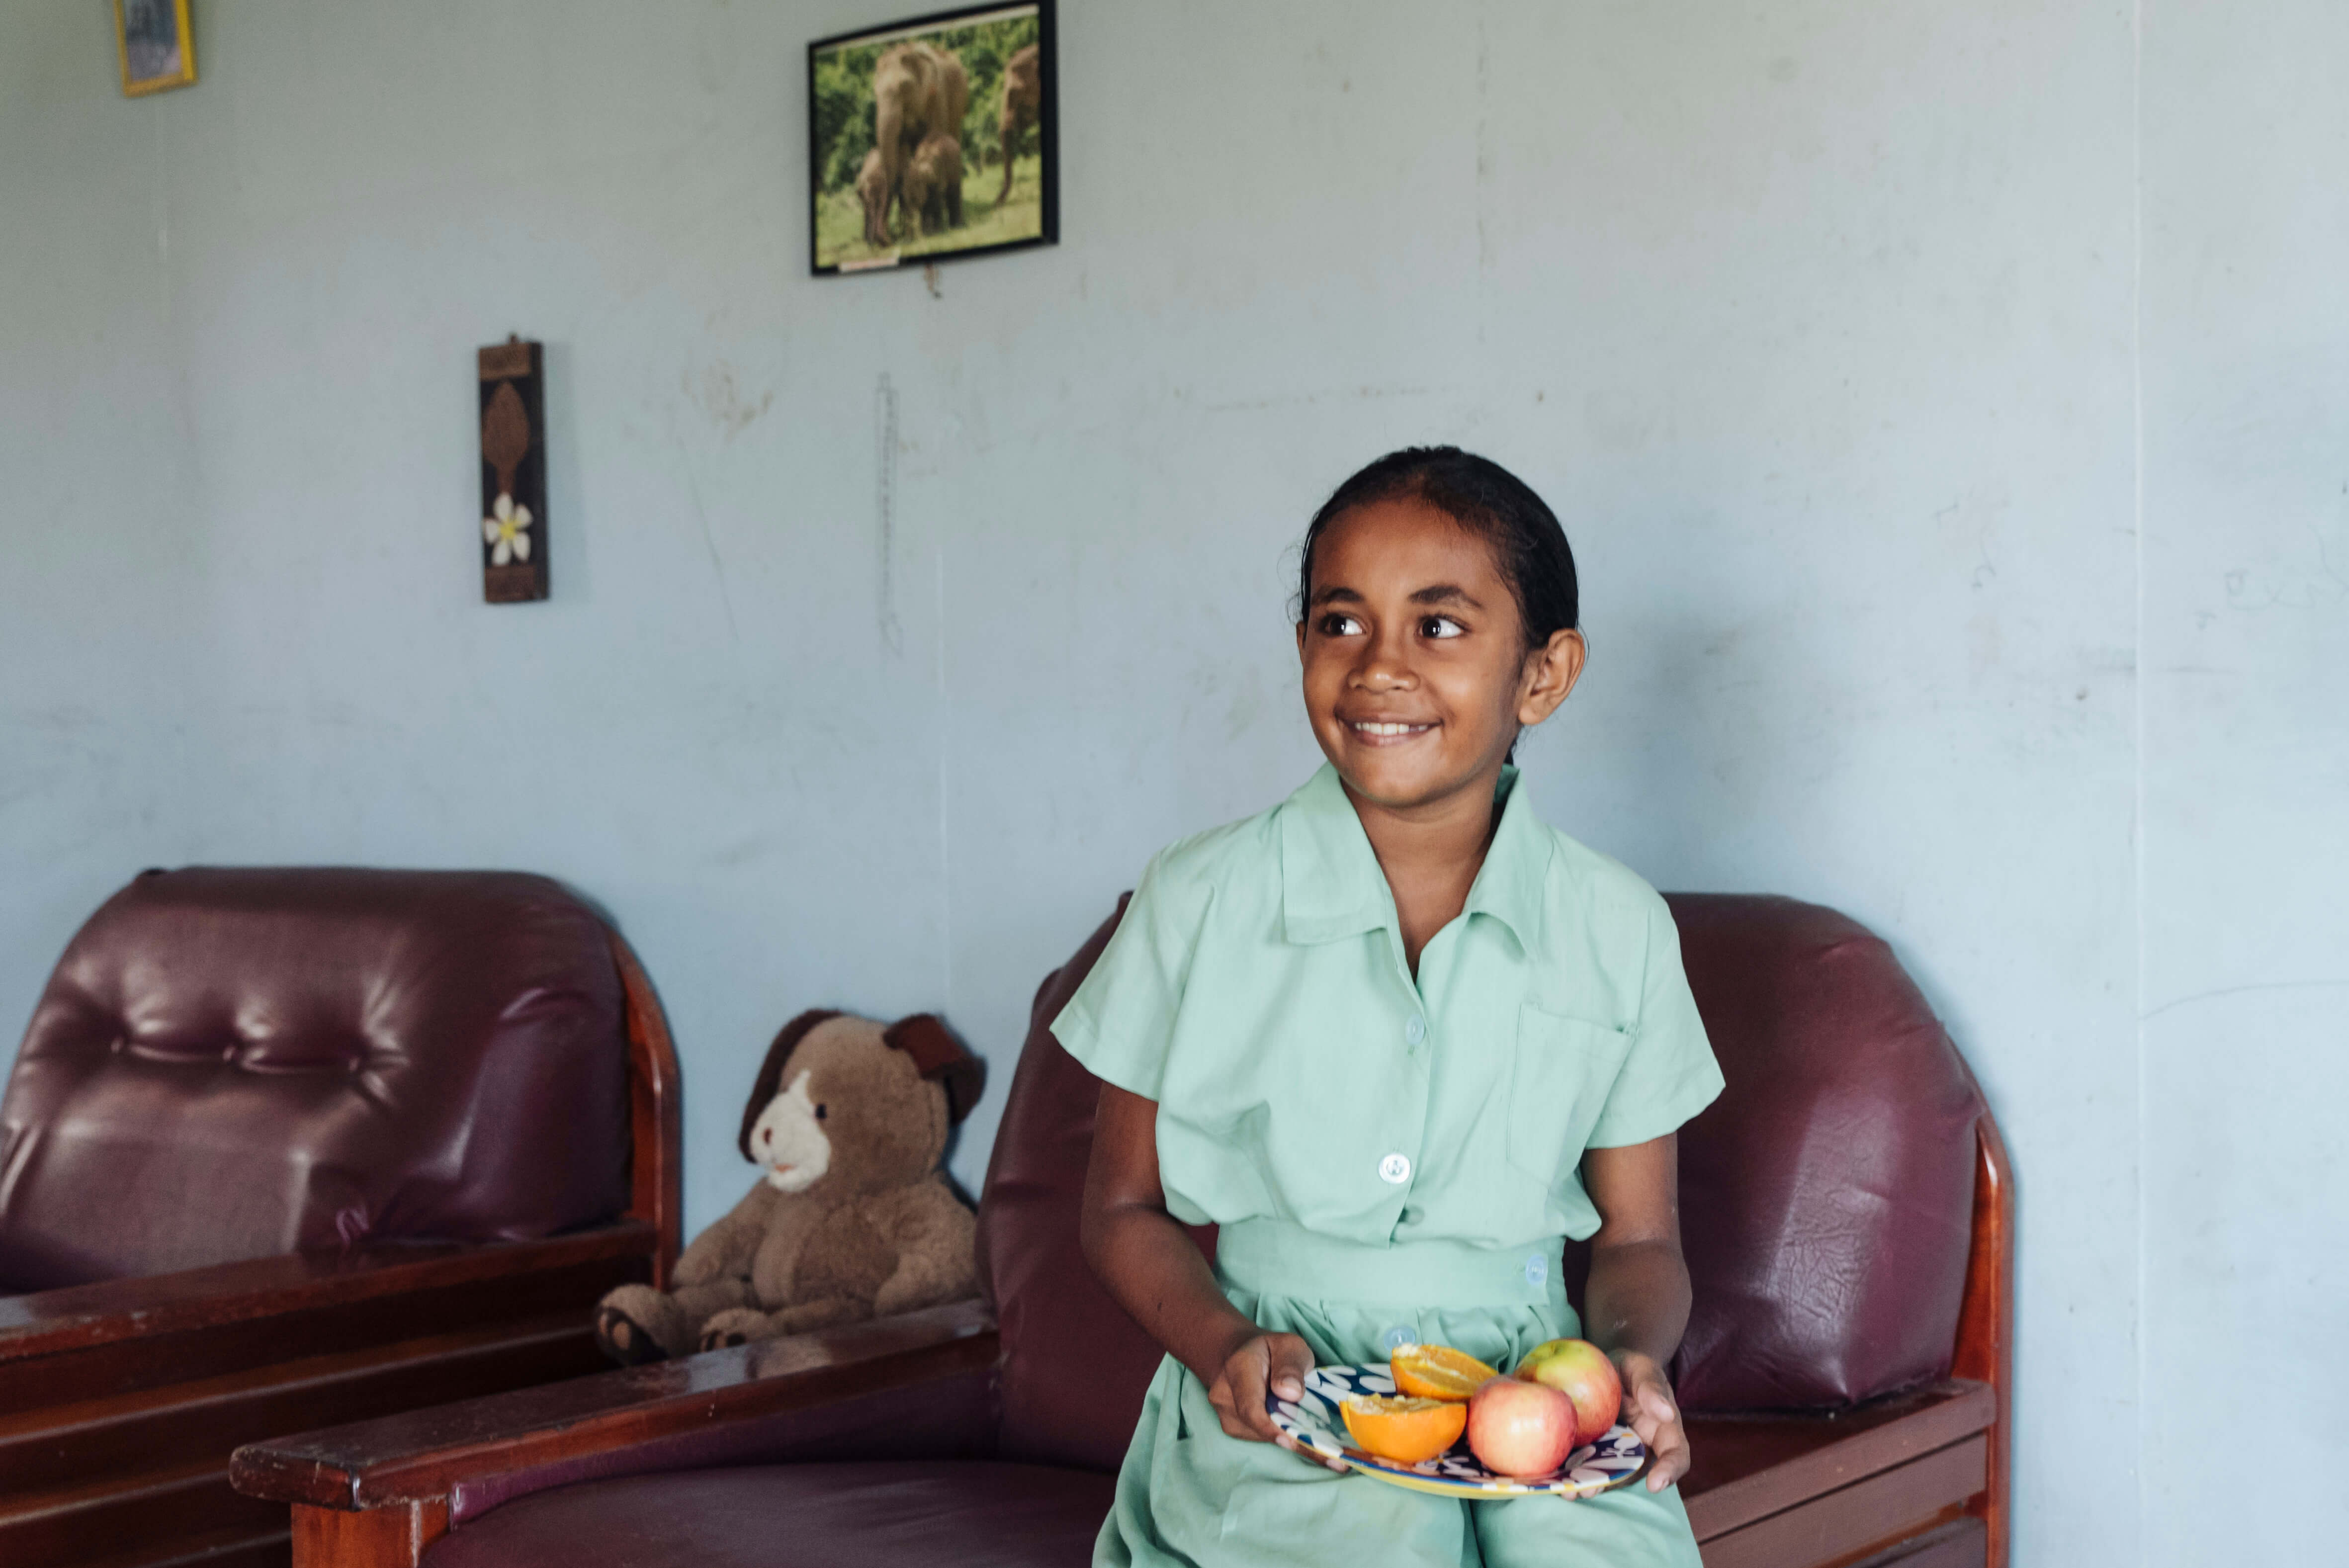 Fijian student who participated in Beyond the Stars sits in her home holding a plate of fruits.